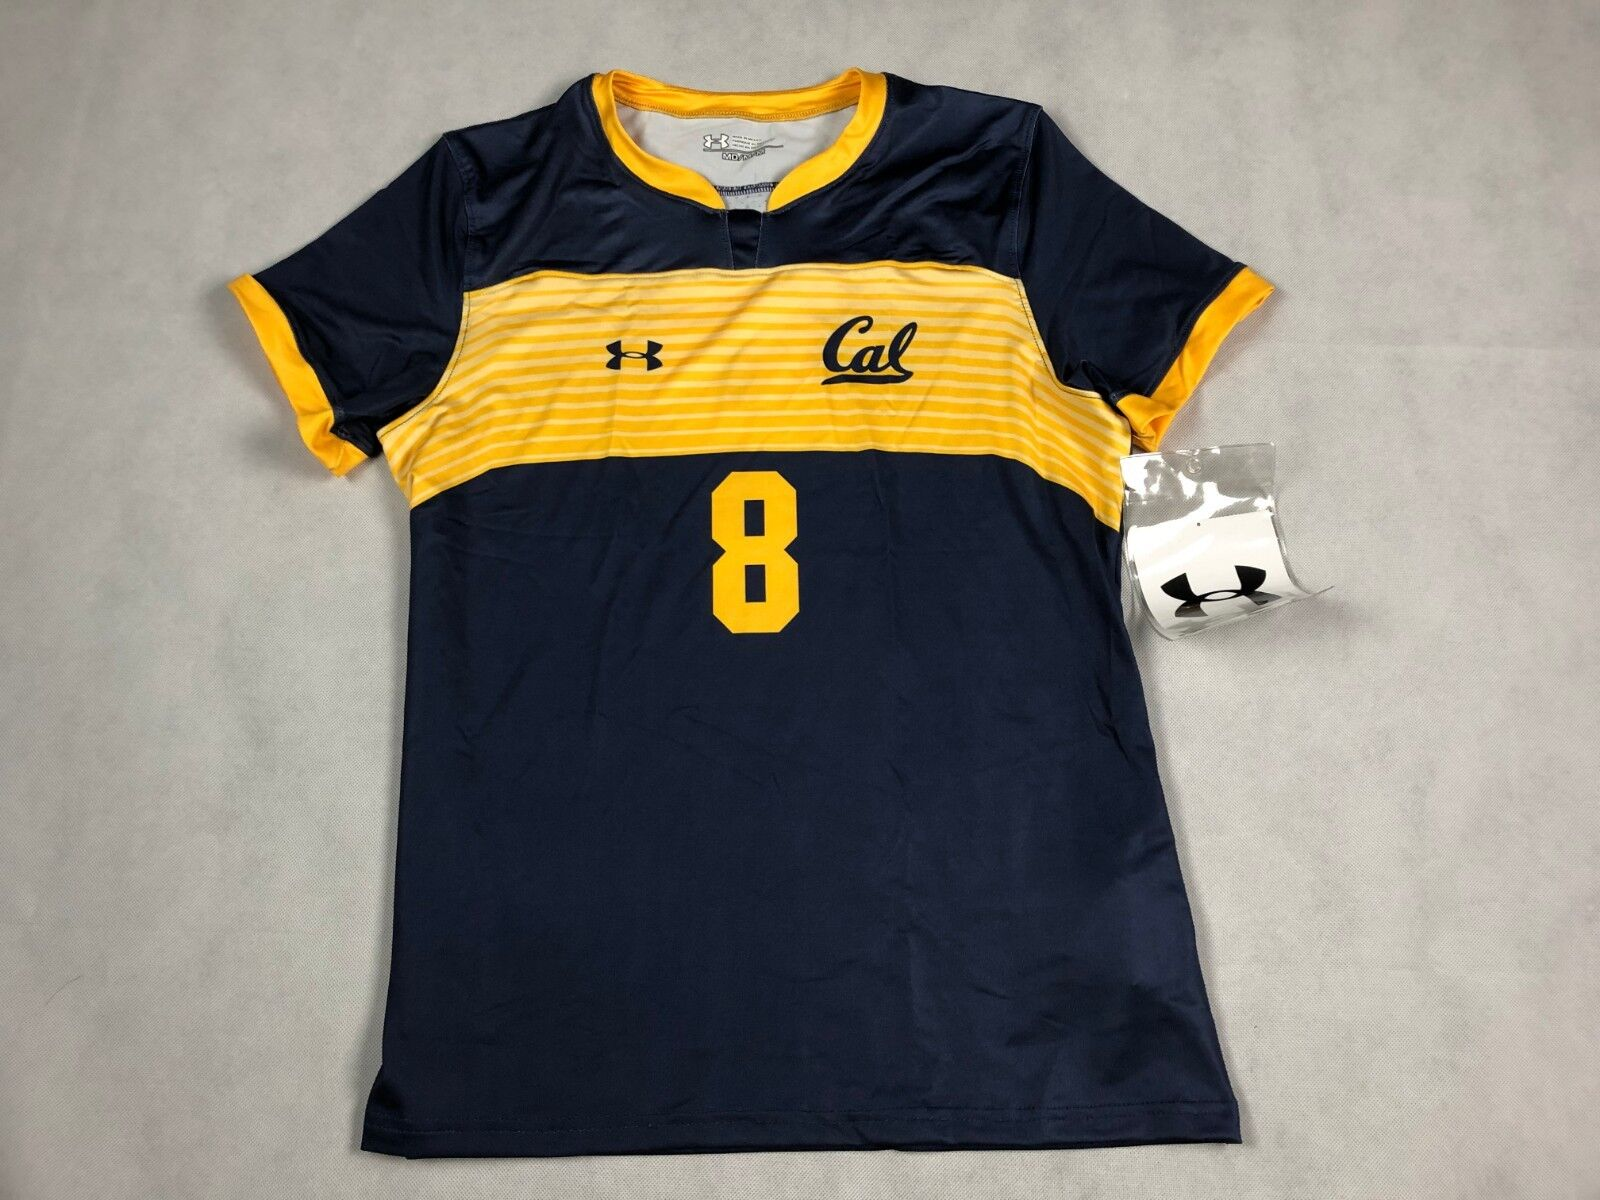 5b7c6940c89 UNDER ARMOUR WOMENS ARMOURFUSE SHOWTIME JERSEY CAL  8 SOCCER JERSEY ...